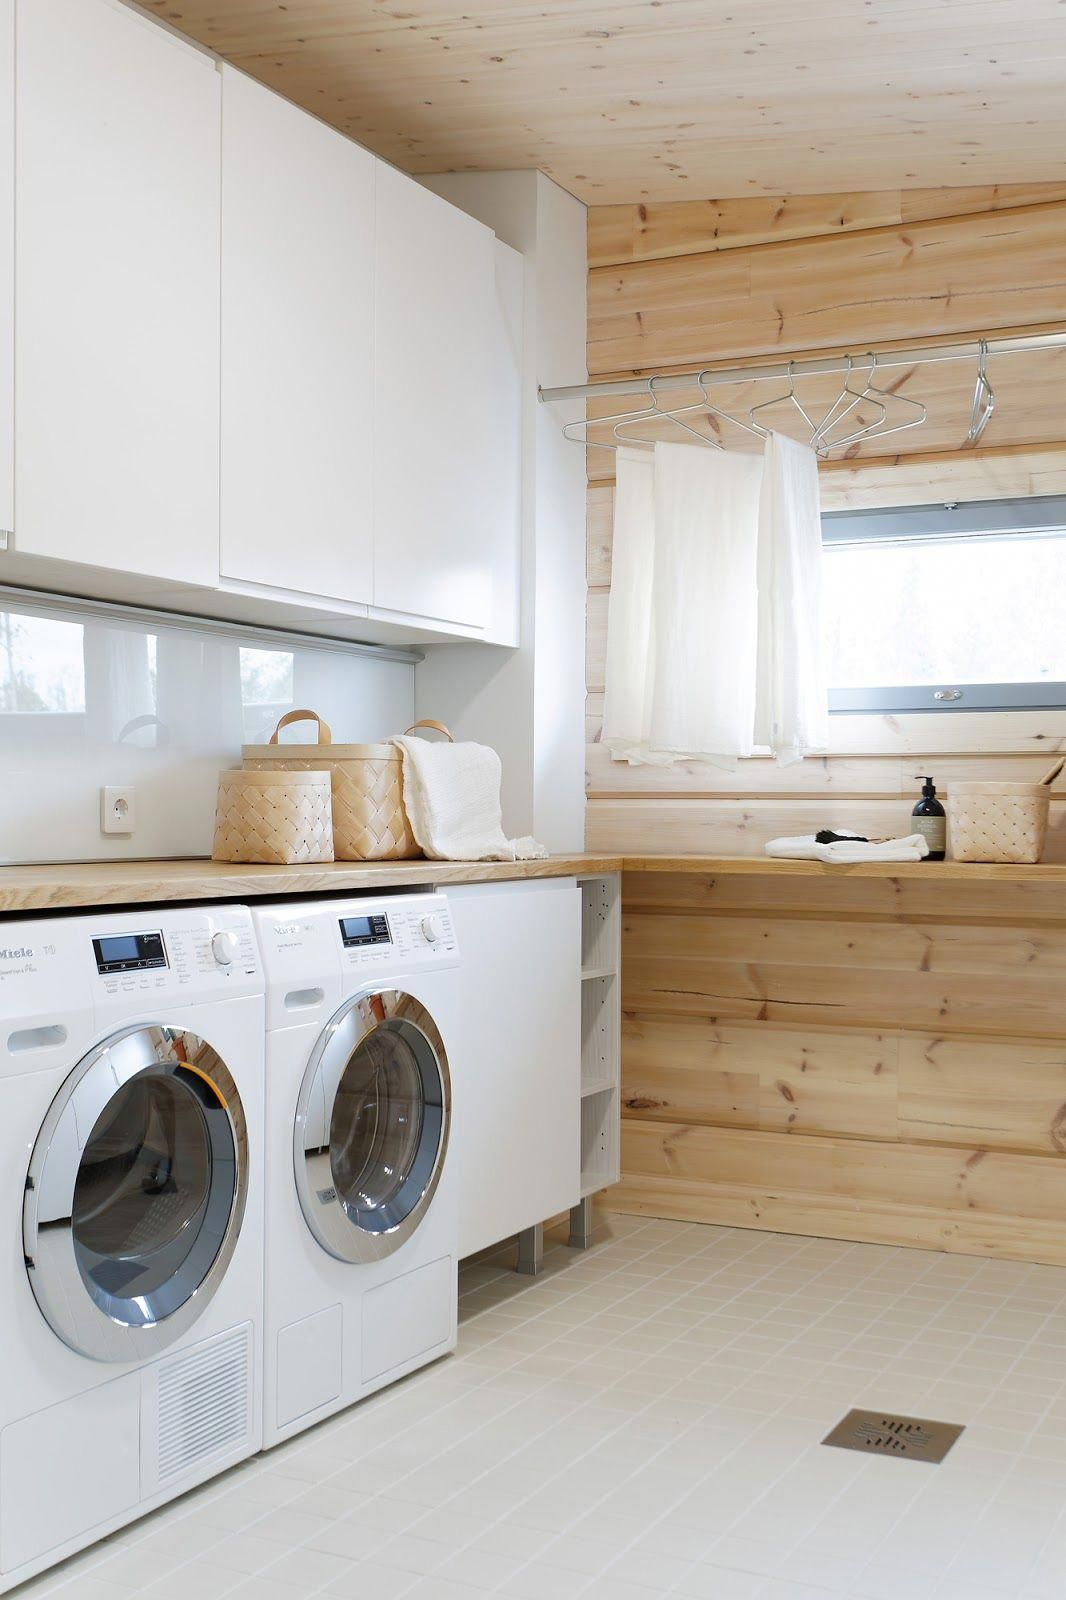 Classic Clean And Swedish Laundryroomdecorating Laundry Room Design Laundry Room Layouts Basement Laundry Room Makeover